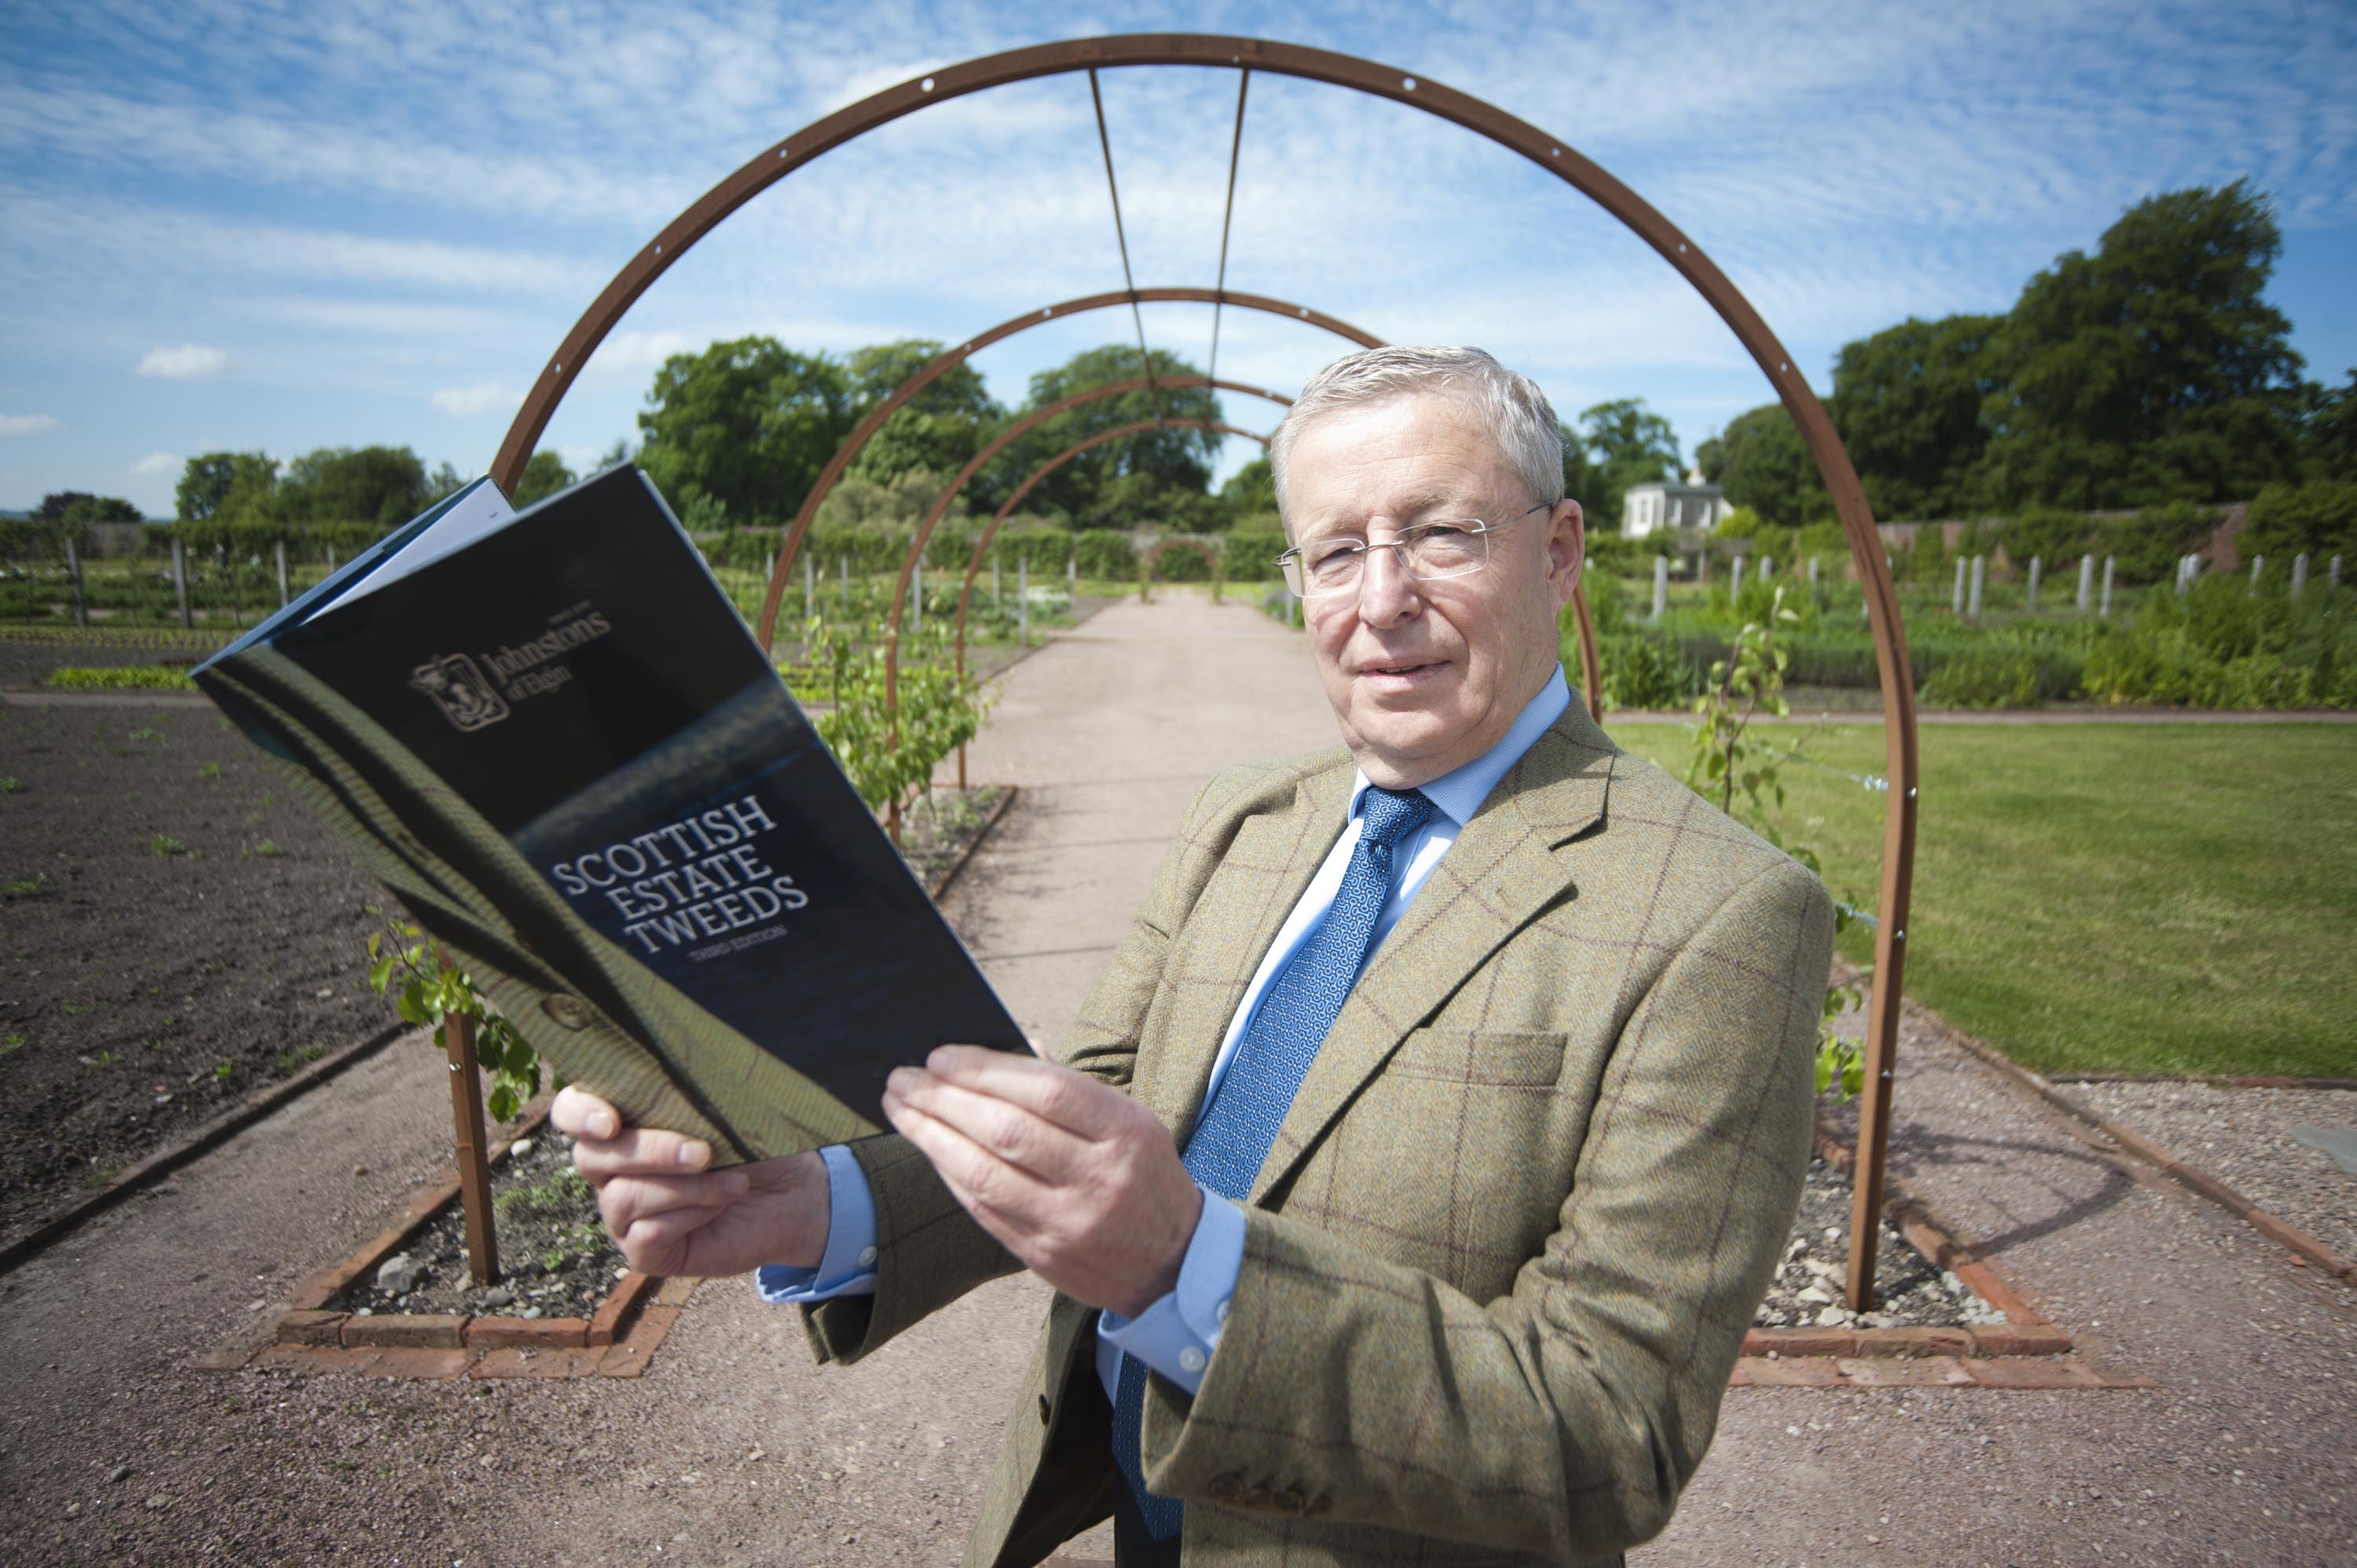 Author Ian Urquhart, chairman of Johnstons of Elgin, has written a book showcasing the history of estate tweeds in Scotland.